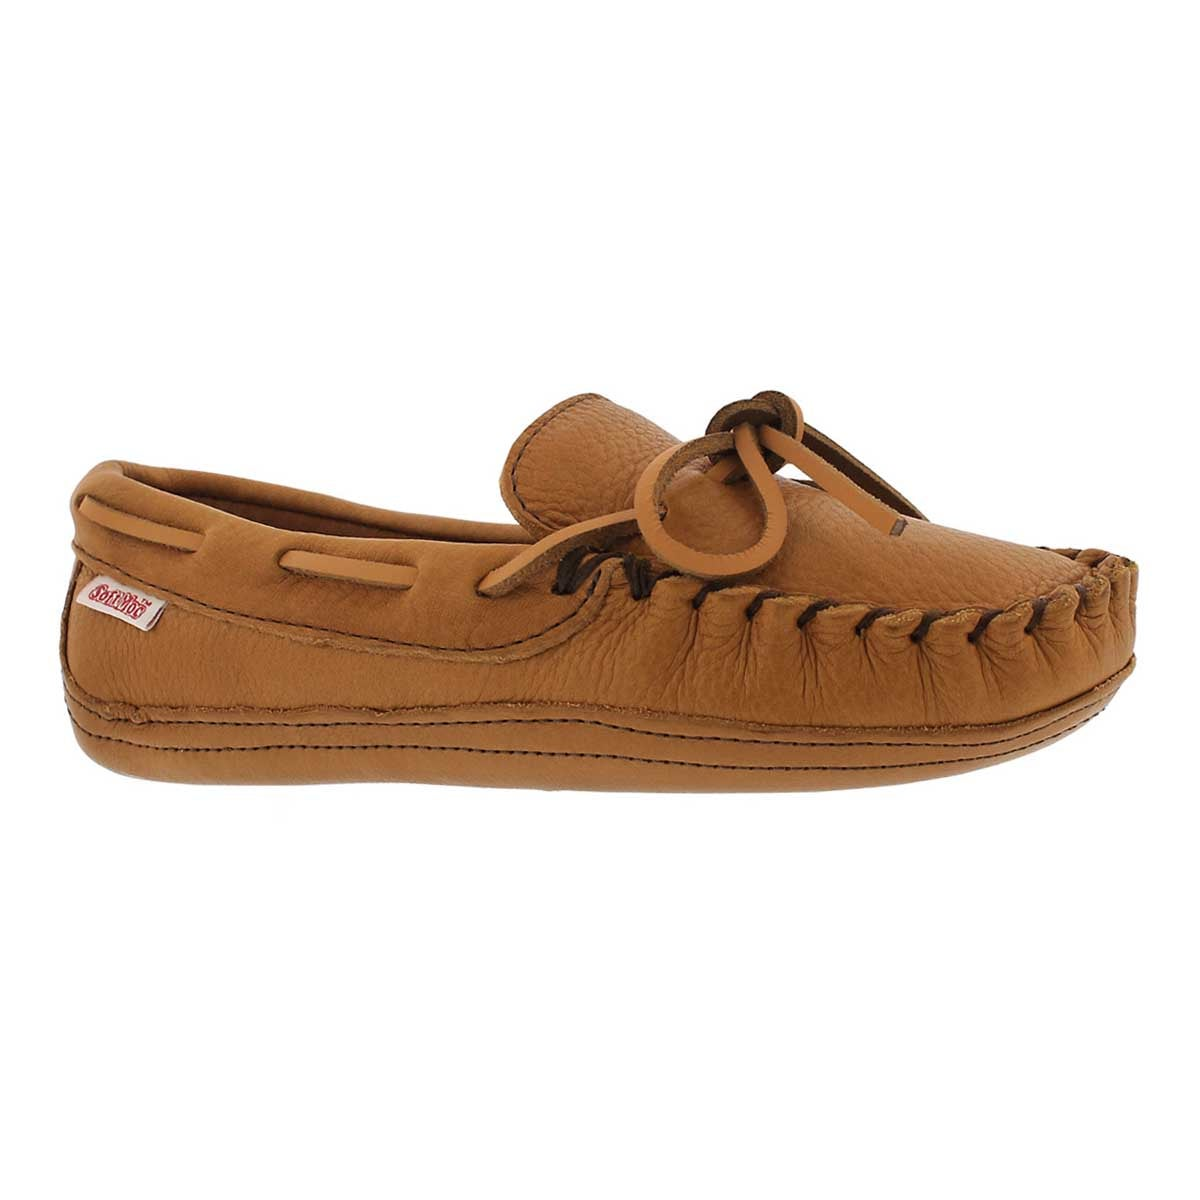 Women's 2471 cork leather moccasins